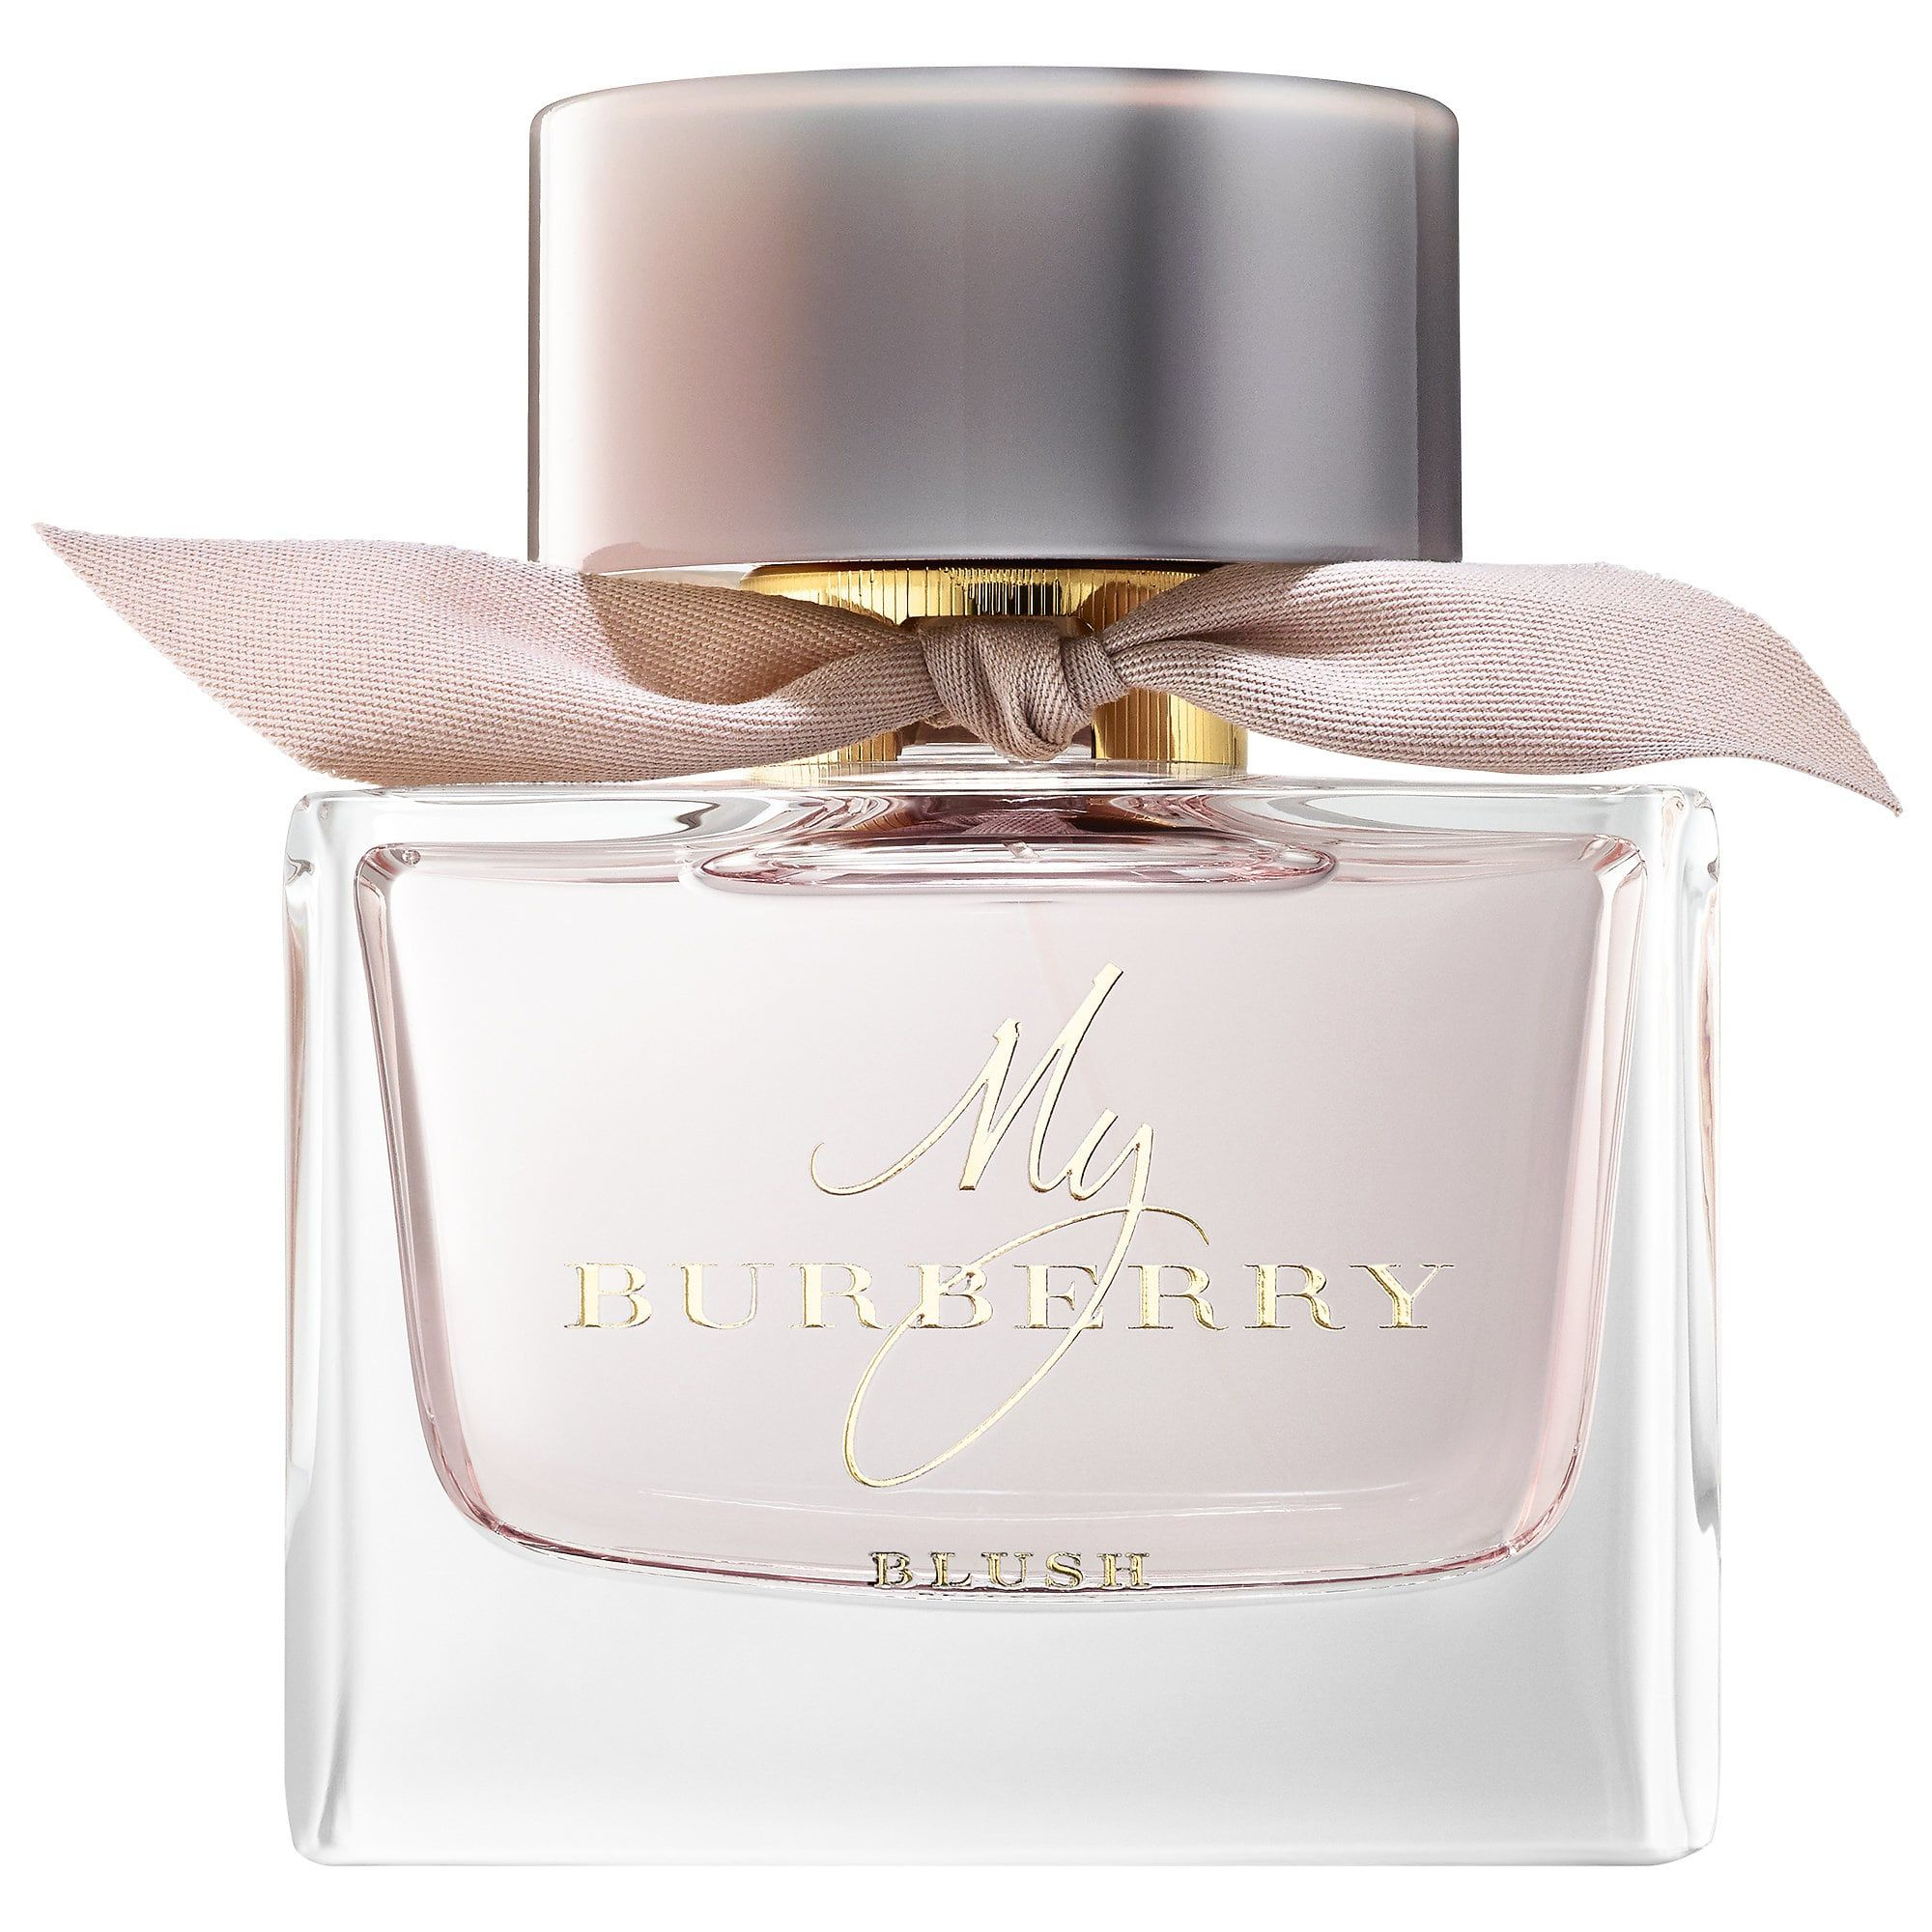 De Blush 90 My Ml Oz In 3 Parfum Burberry 2019 Spray 0 Eau 8OvNwmn0